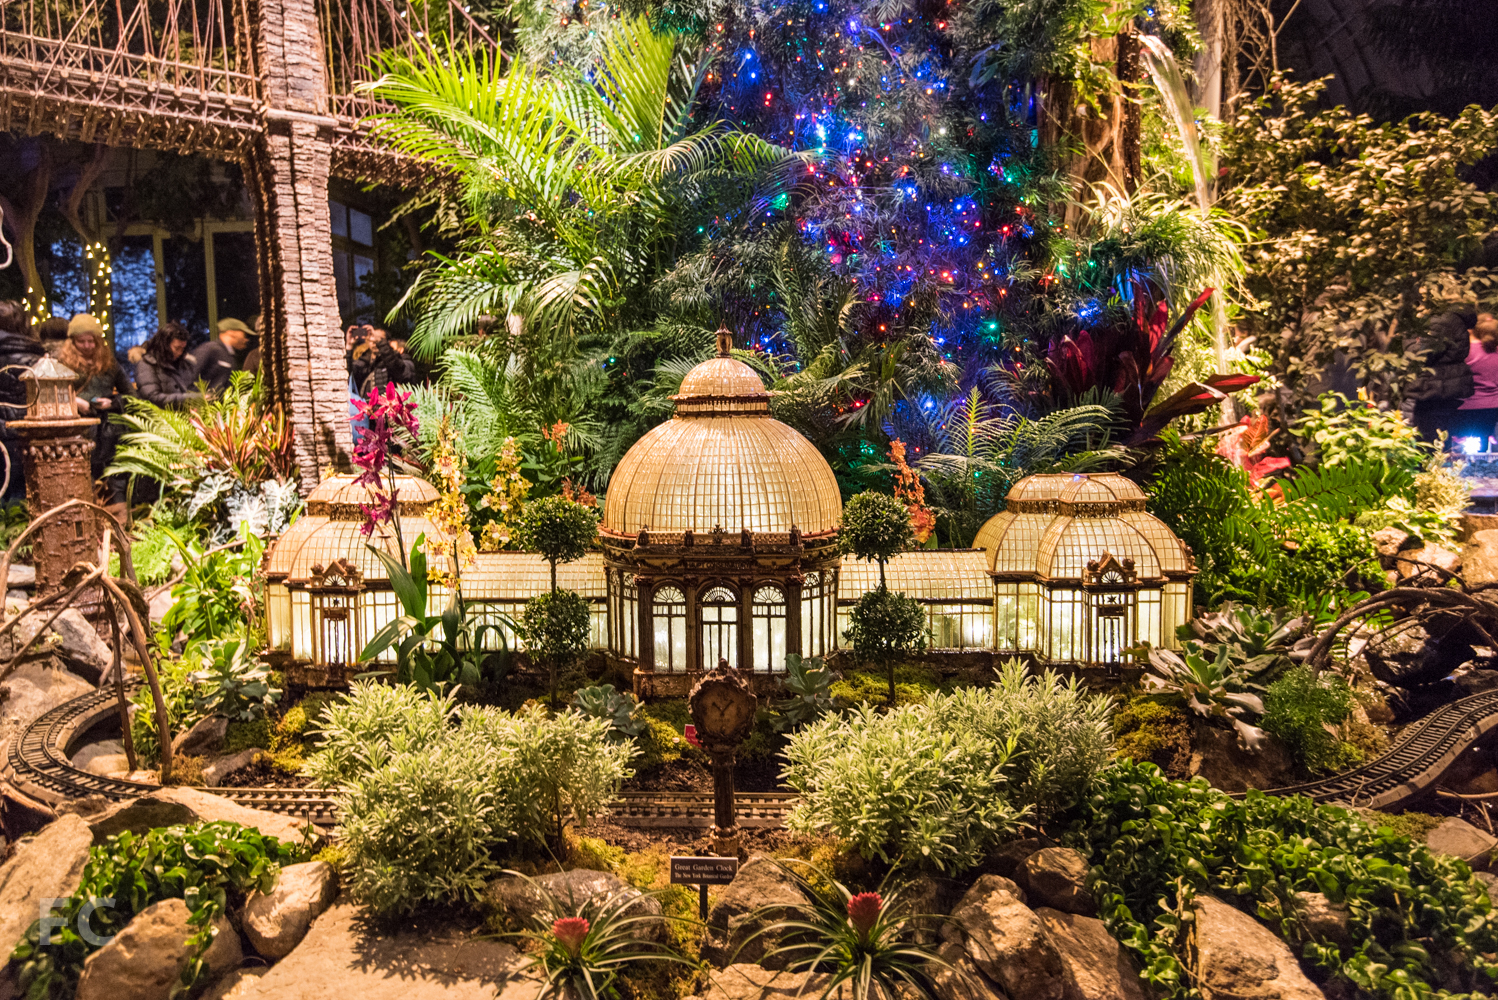 Holiday Train Show — FIELD CONDITION